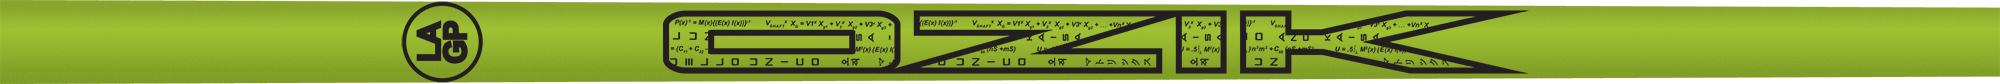 Ozik Red Tie: Lime Green Black Matte - Wood 50 S